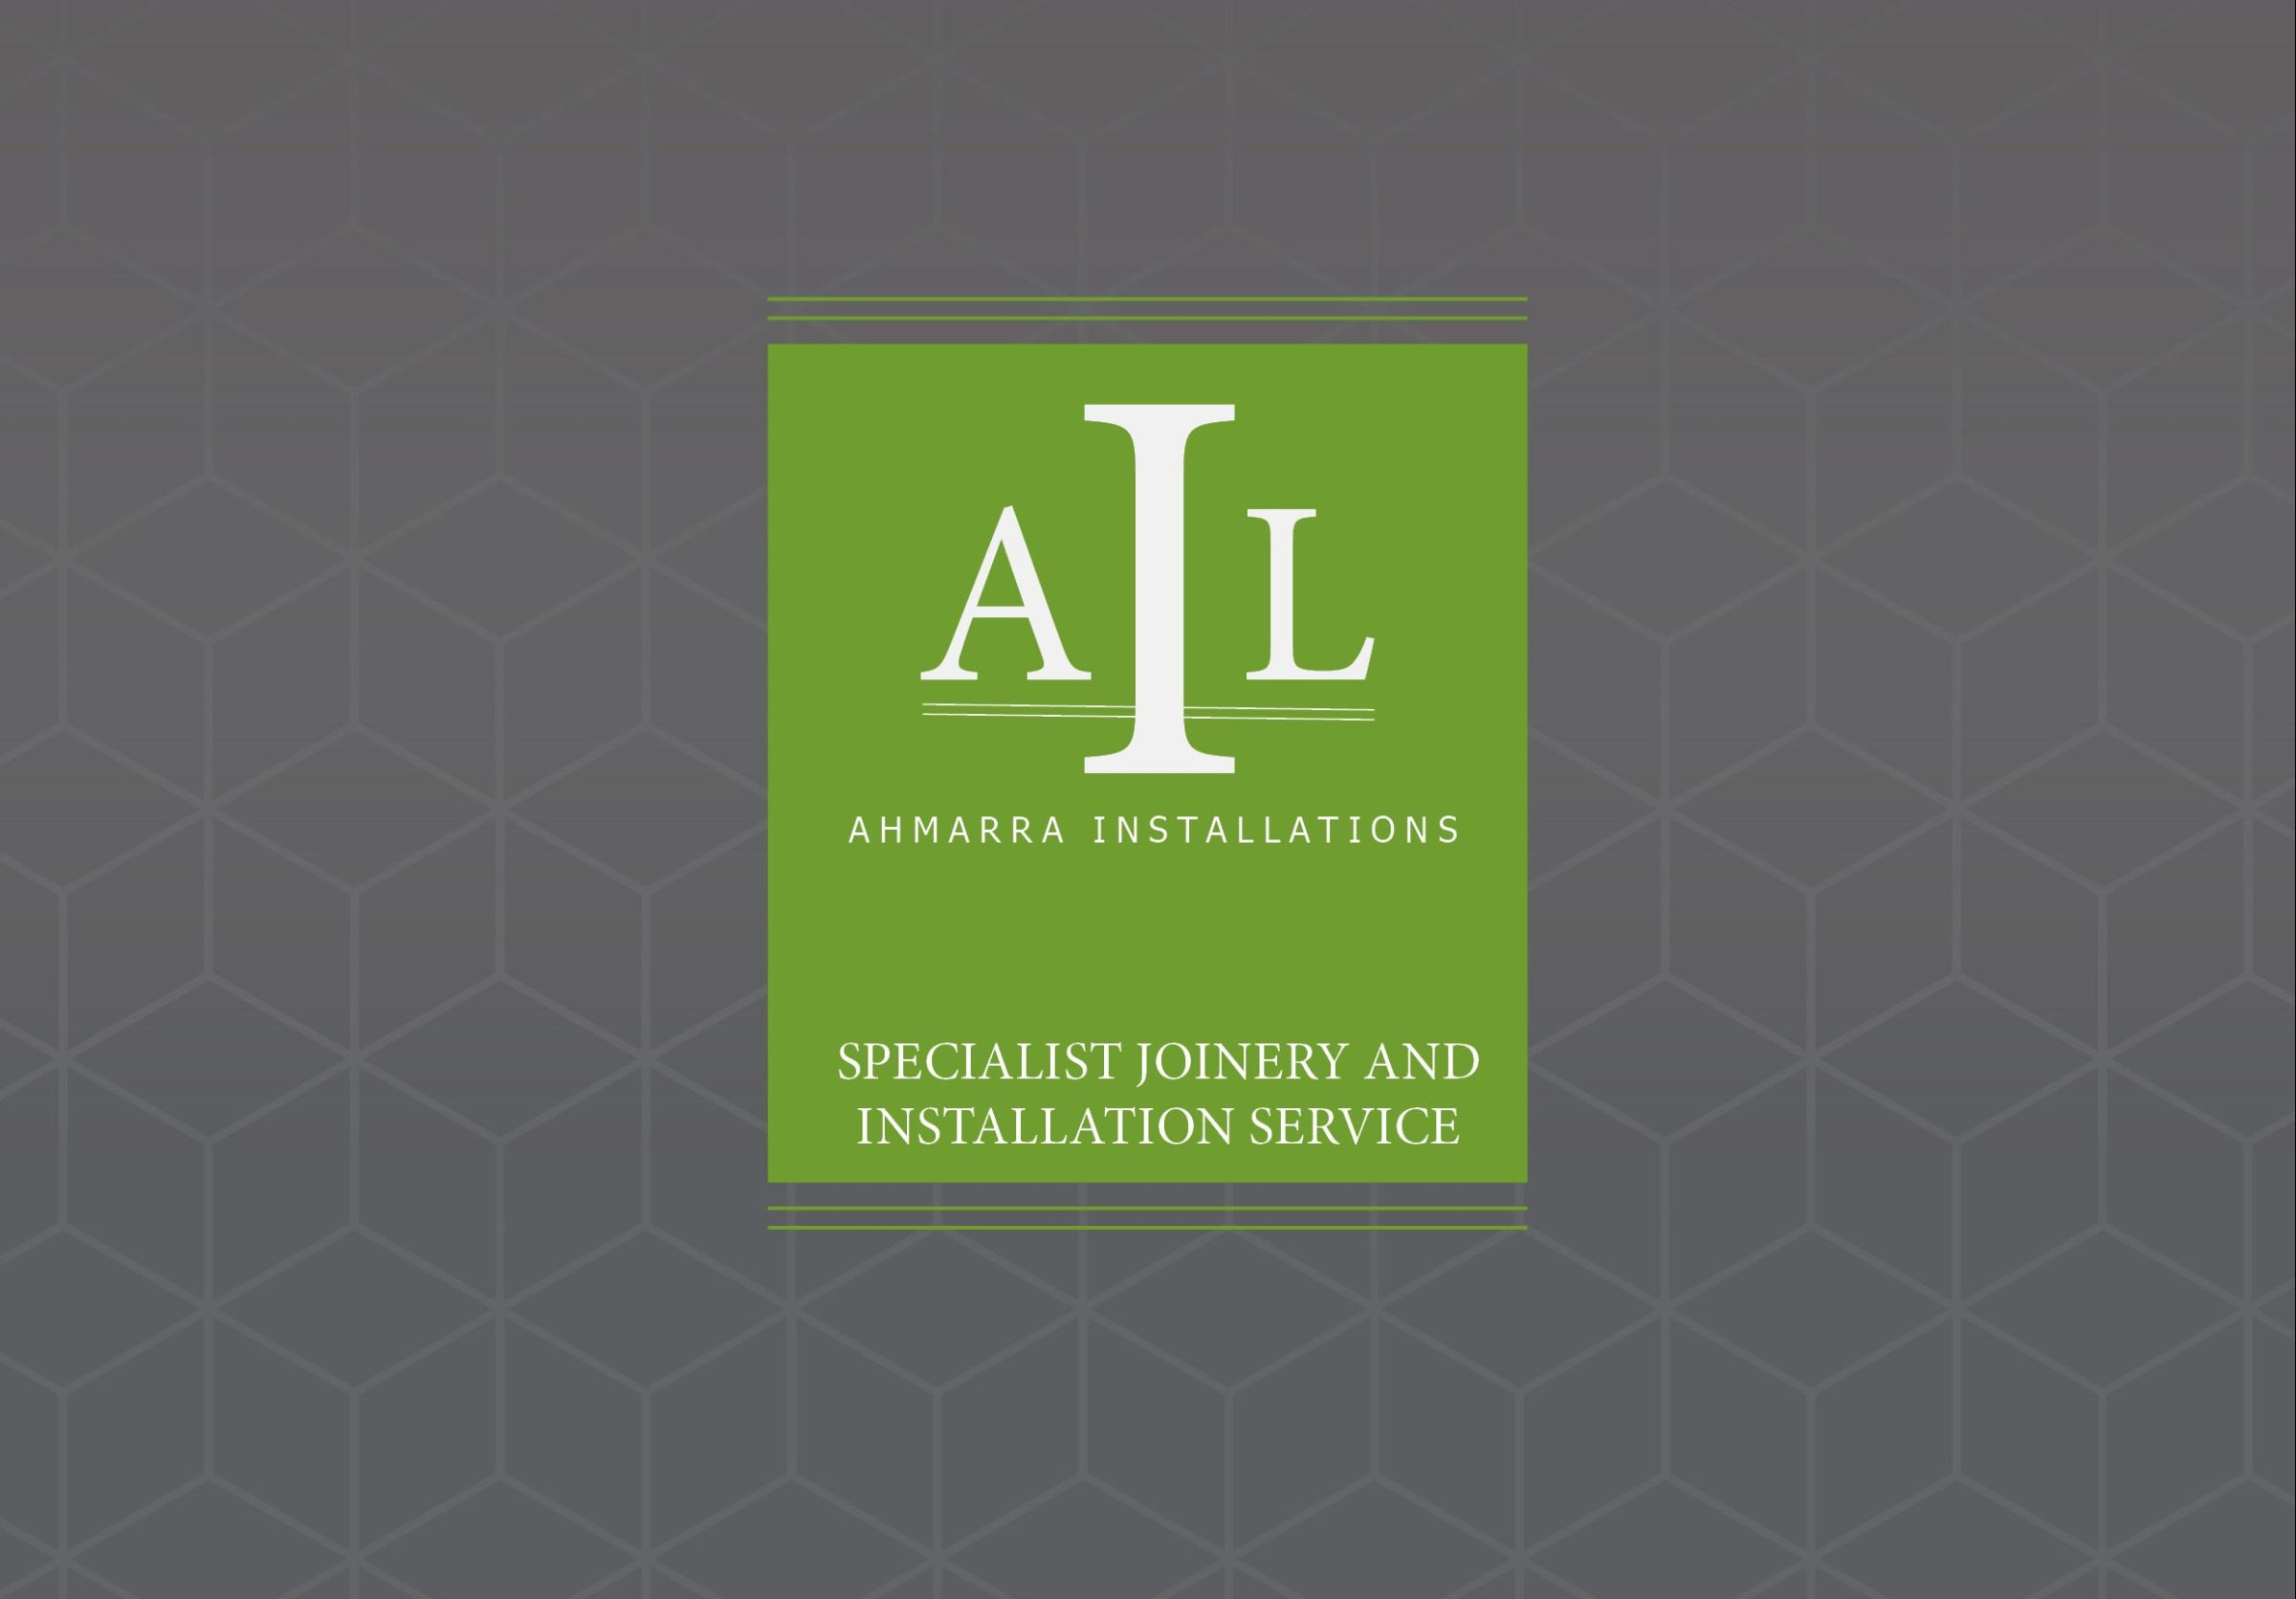 NEW website and brochure for Specialist Joinery and Installation from Ahmarra